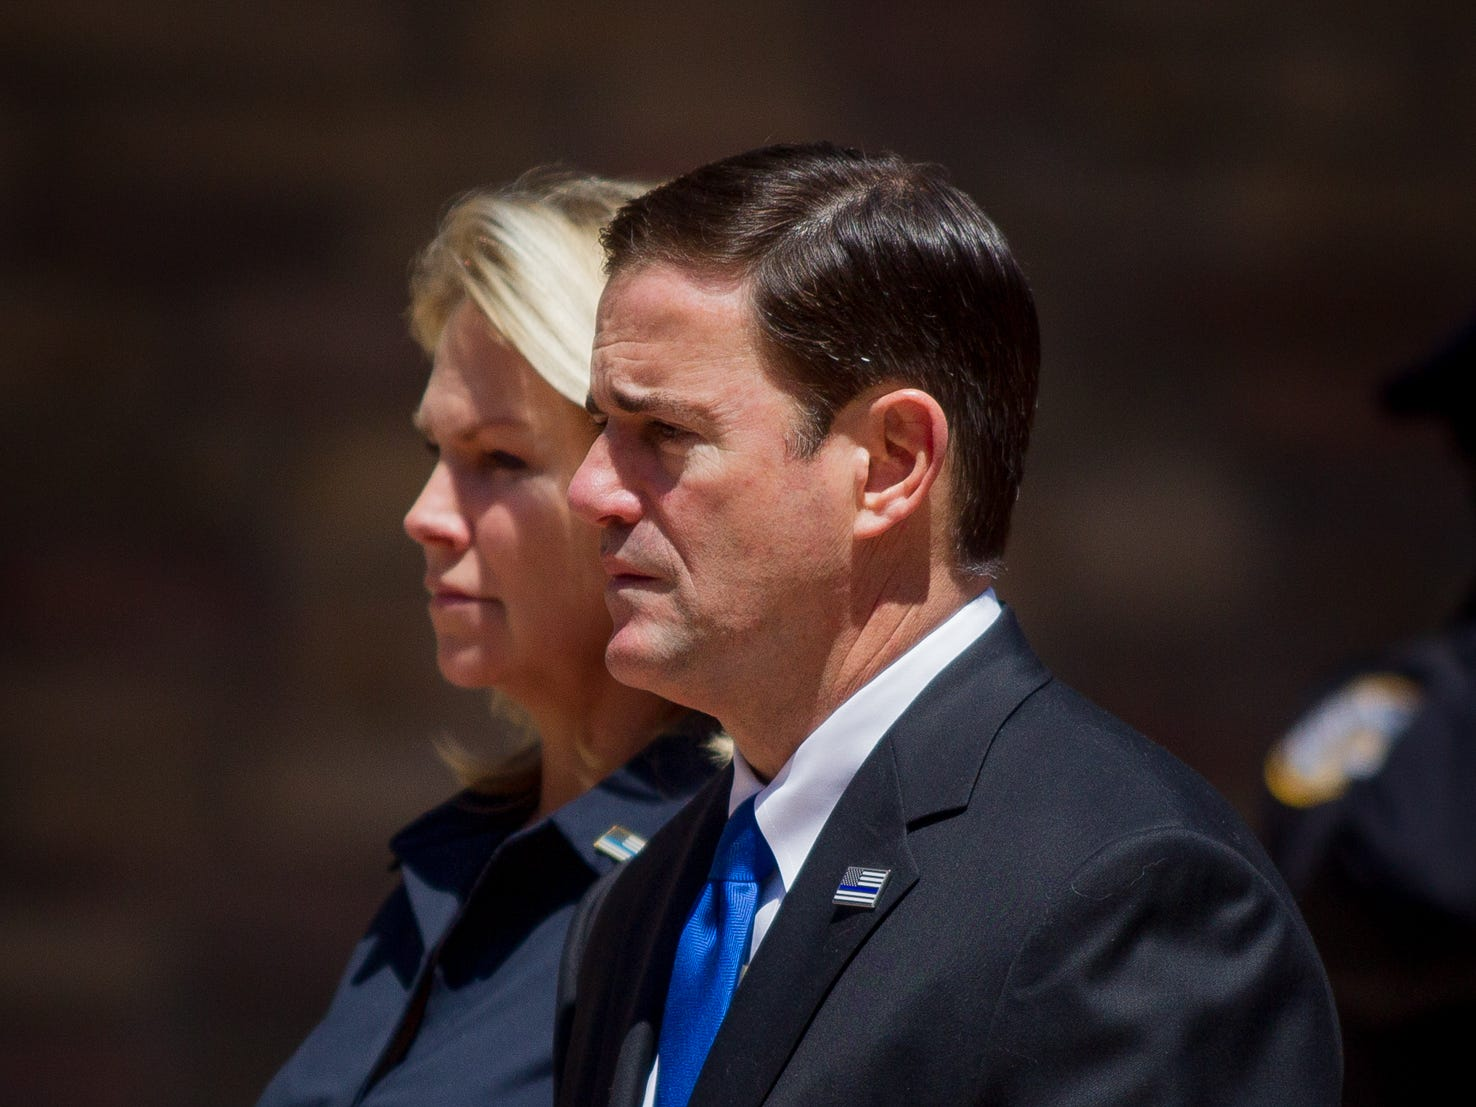 Gov. Doug Ducey walks alongside his wife, Angela Ducey, on Aug. 3, 2018, during the funeral for fallen DPS Trooper Tyler Edenhofer at Christ's Church of the Valley in Peoria.